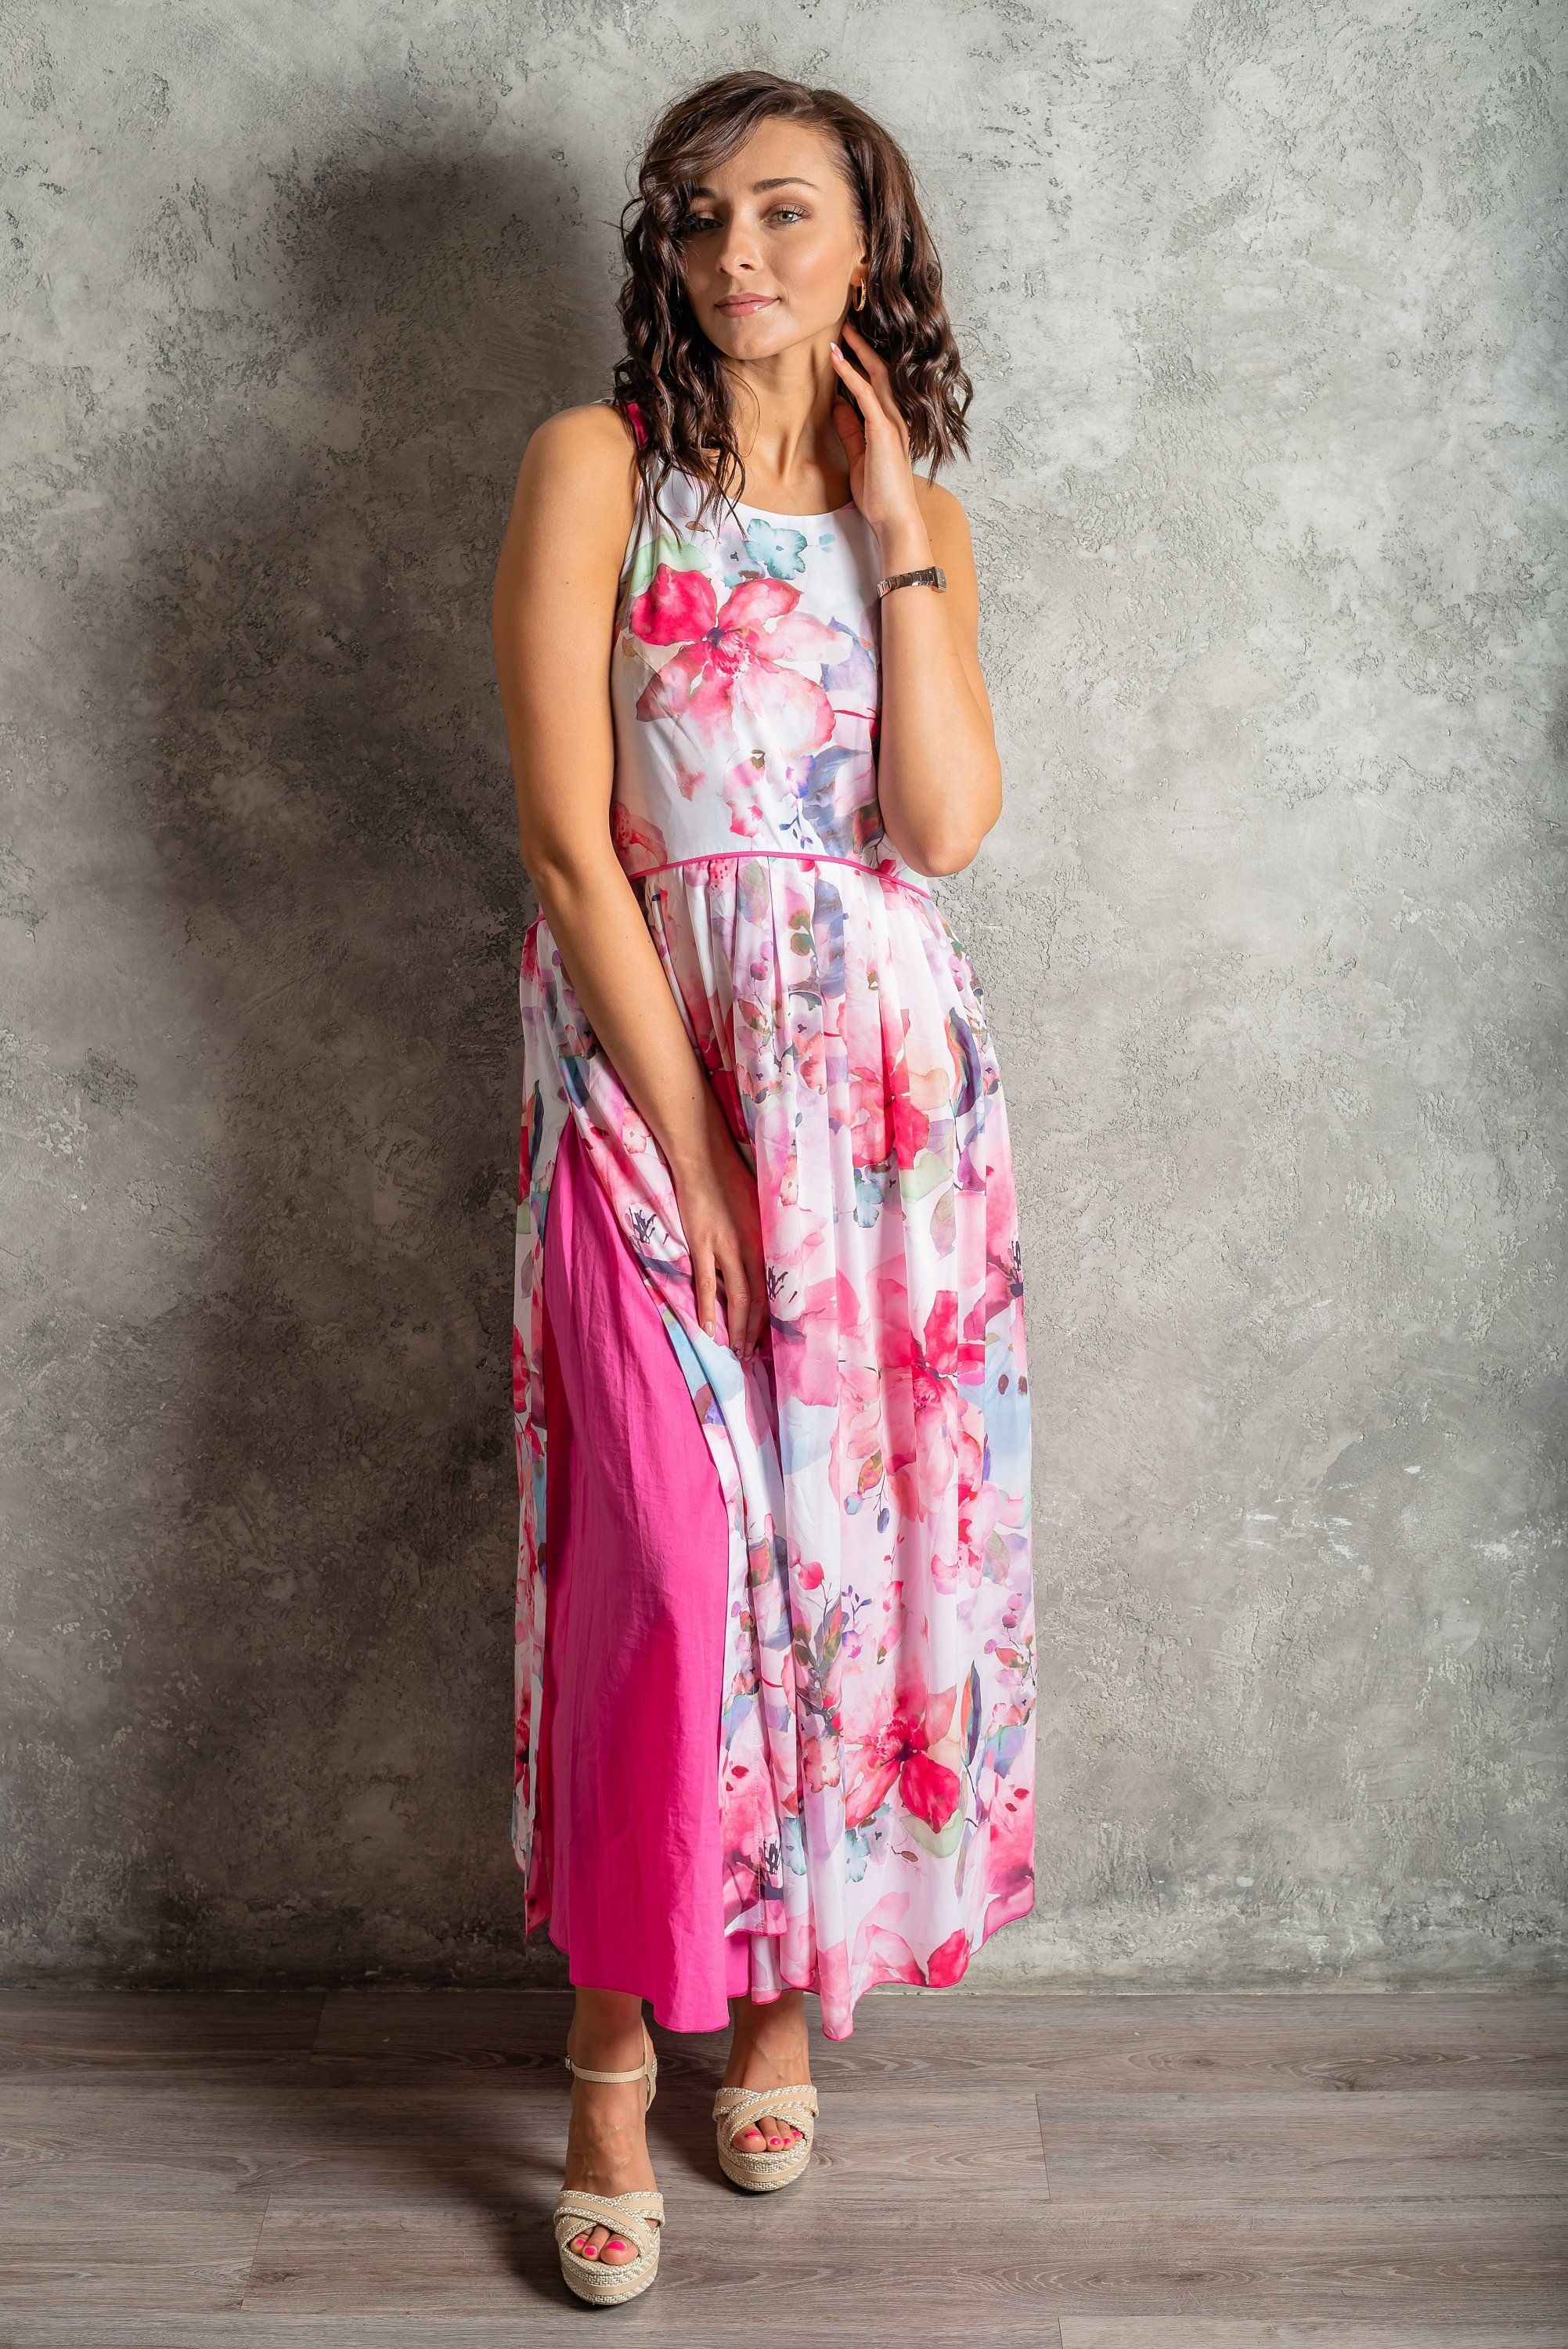 287a814373a6 Flirty summer dress, elegant party's cotton floral print S/M size in ...